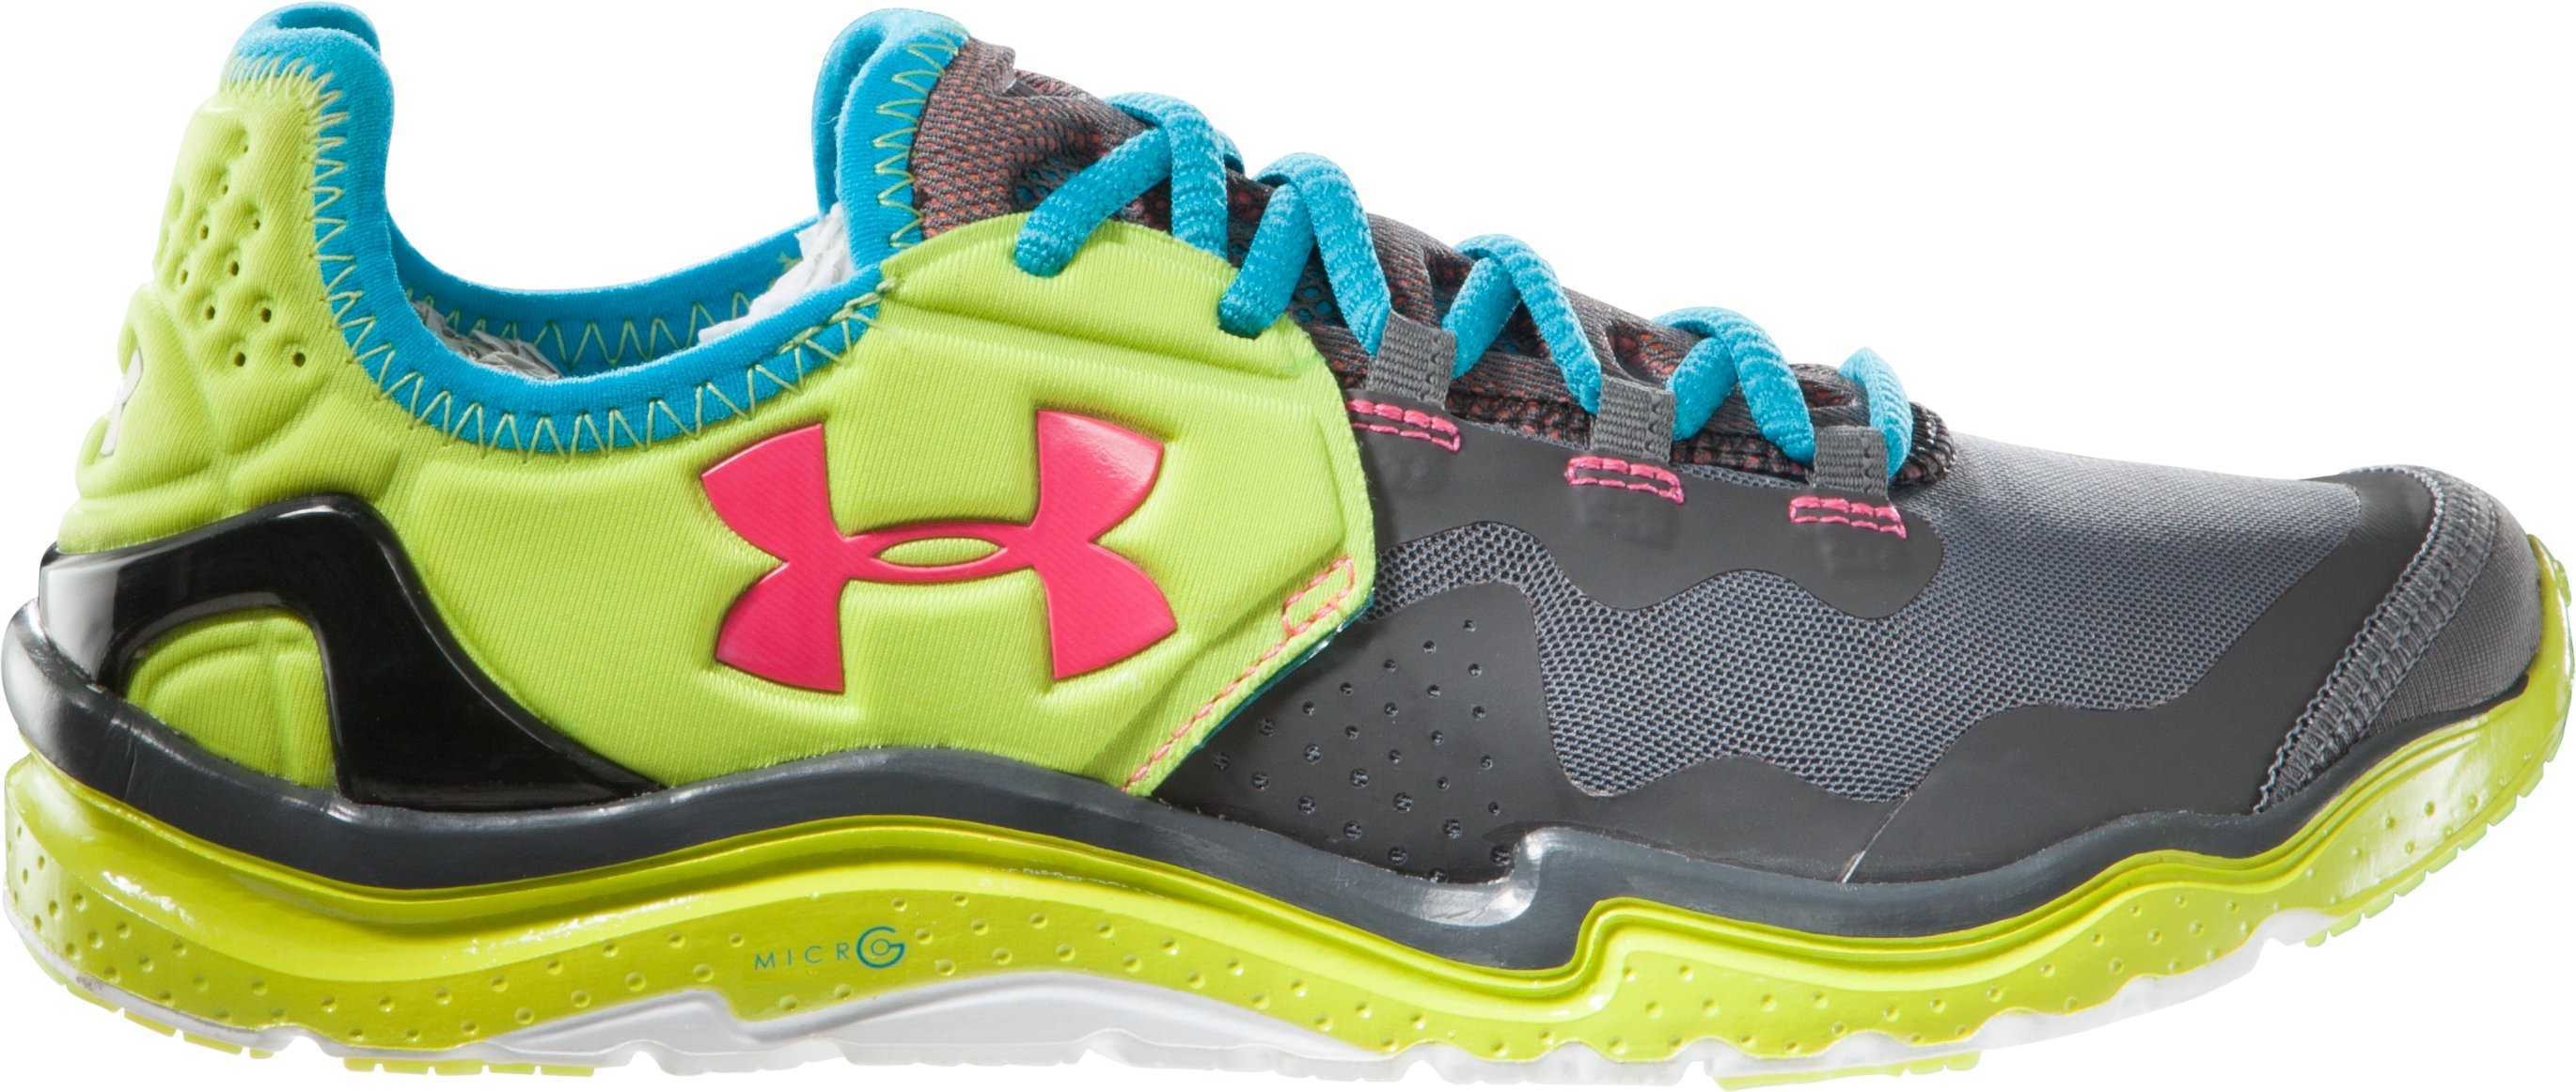 Women's Charge RC 2 Running Shoe, Bitter